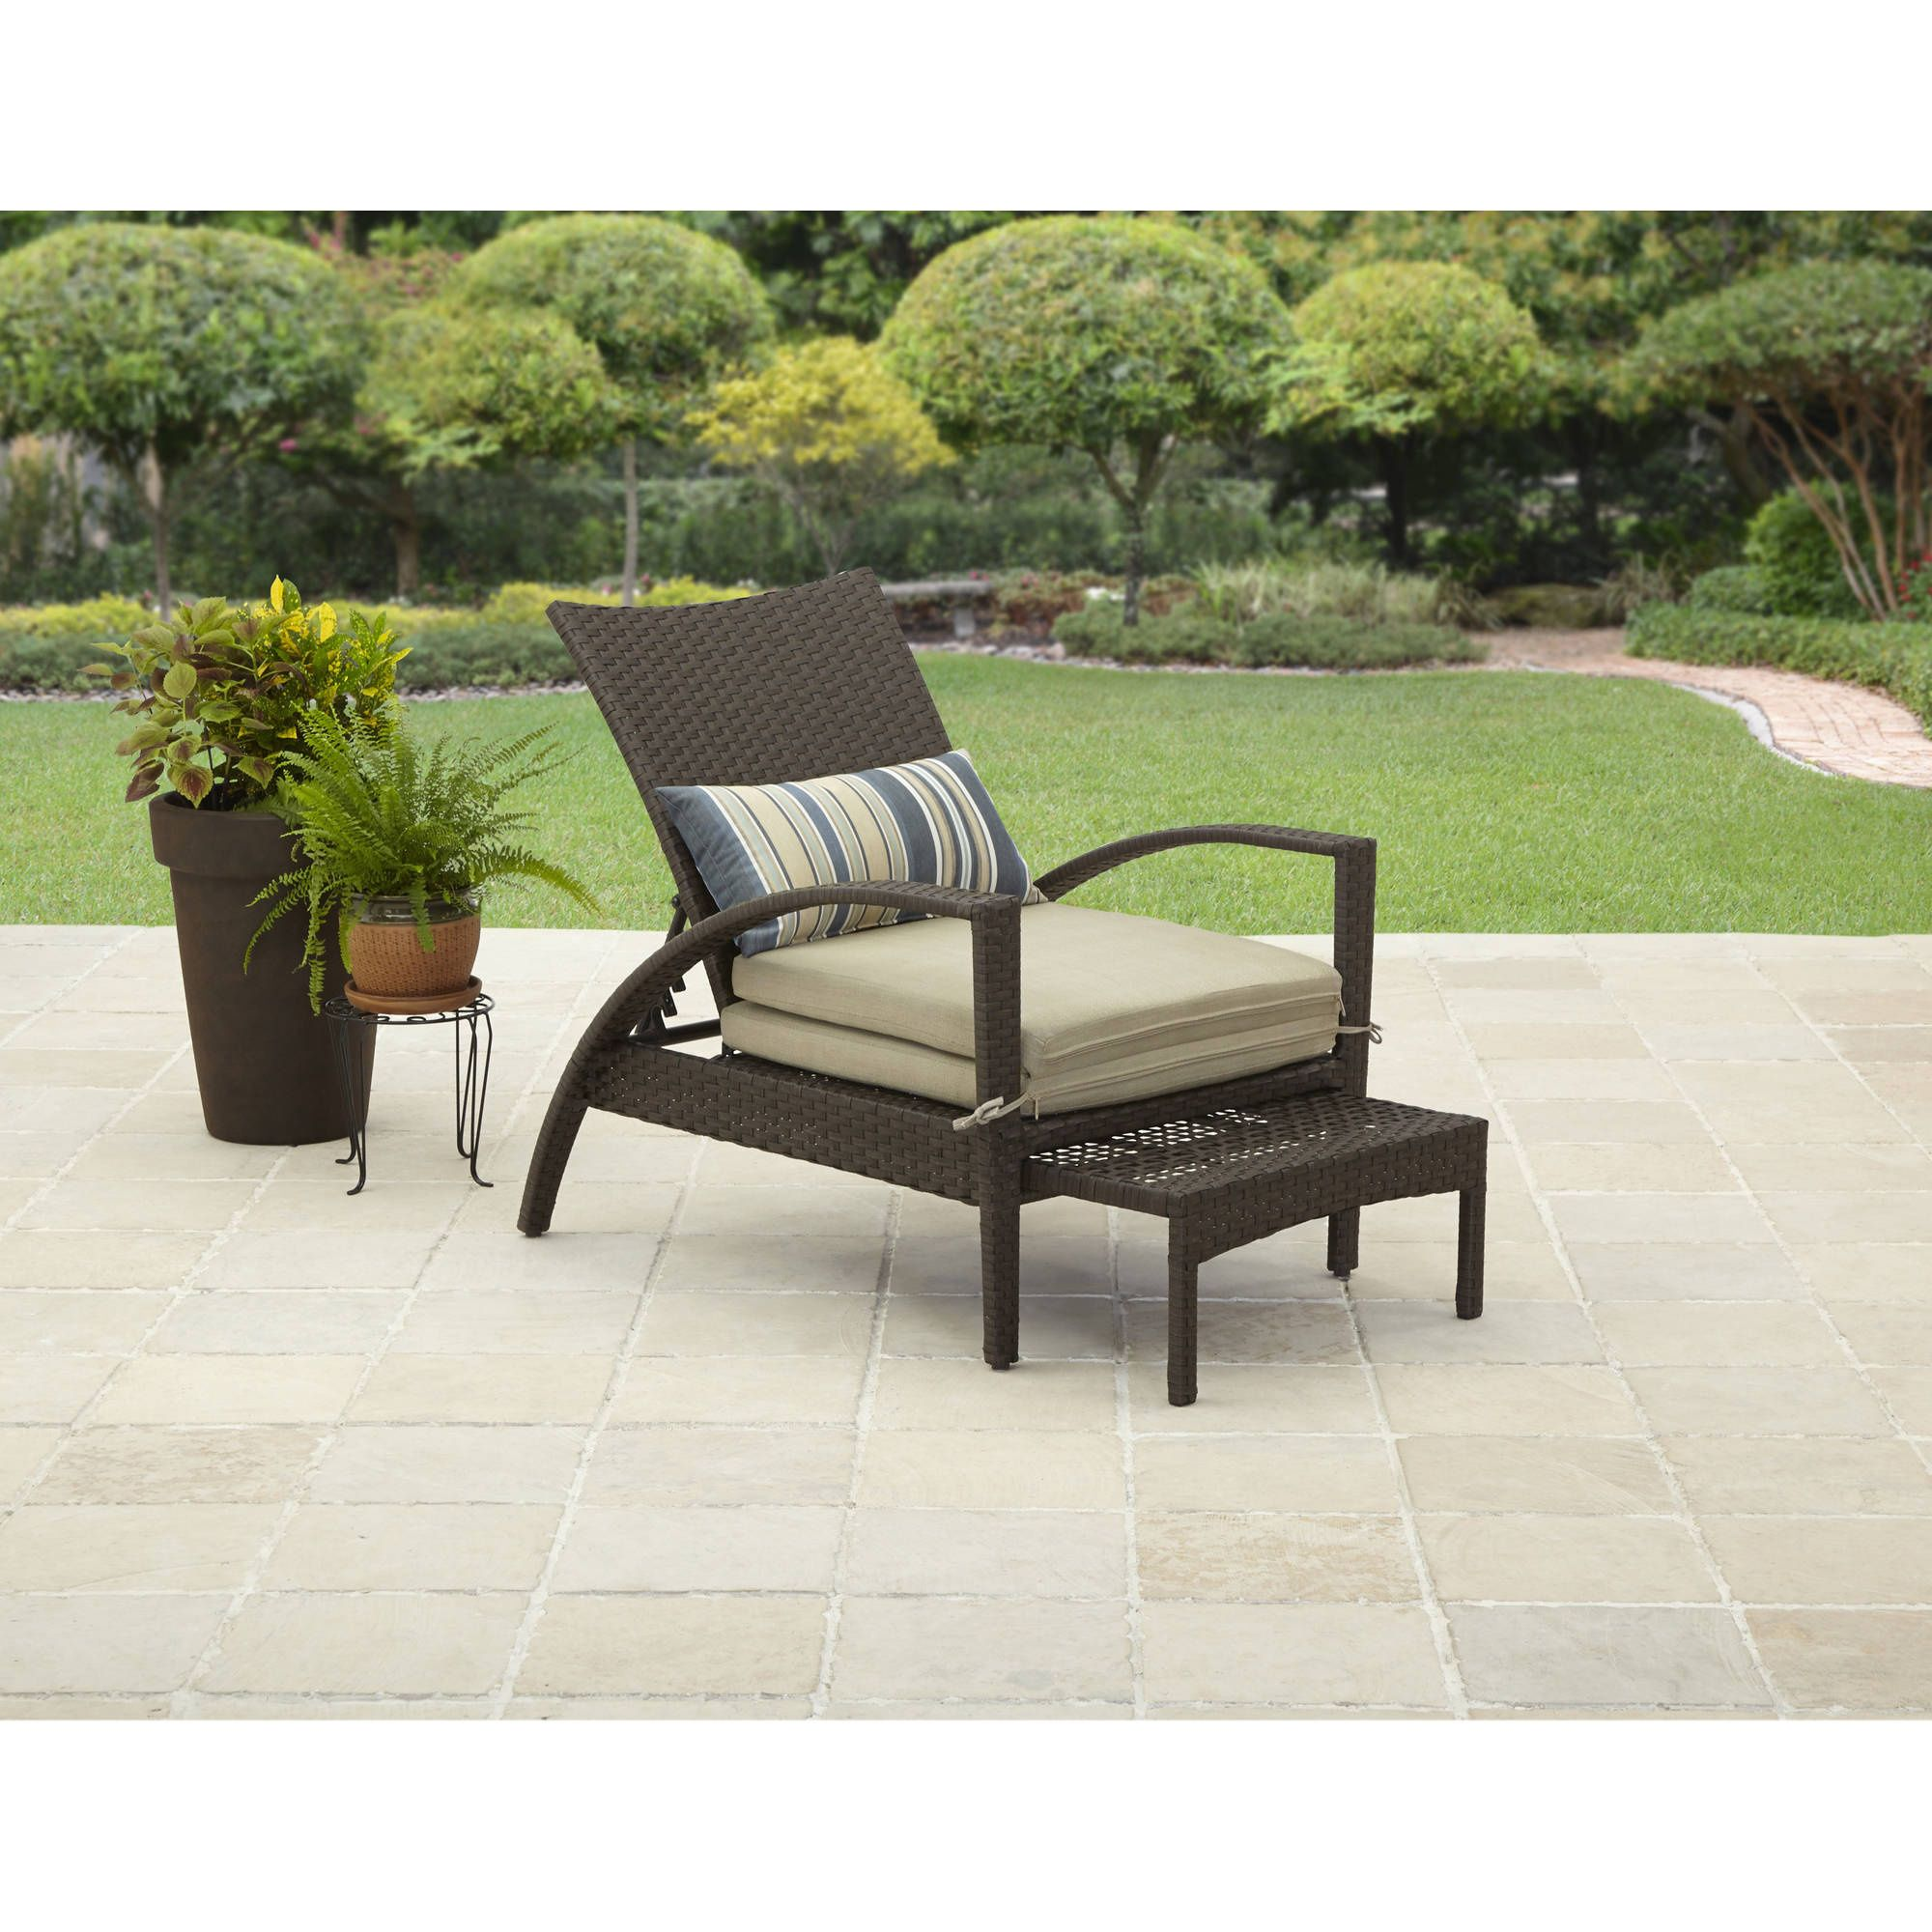 Outdoor Deck Furniture Walmart Best Quality Furniture Check More